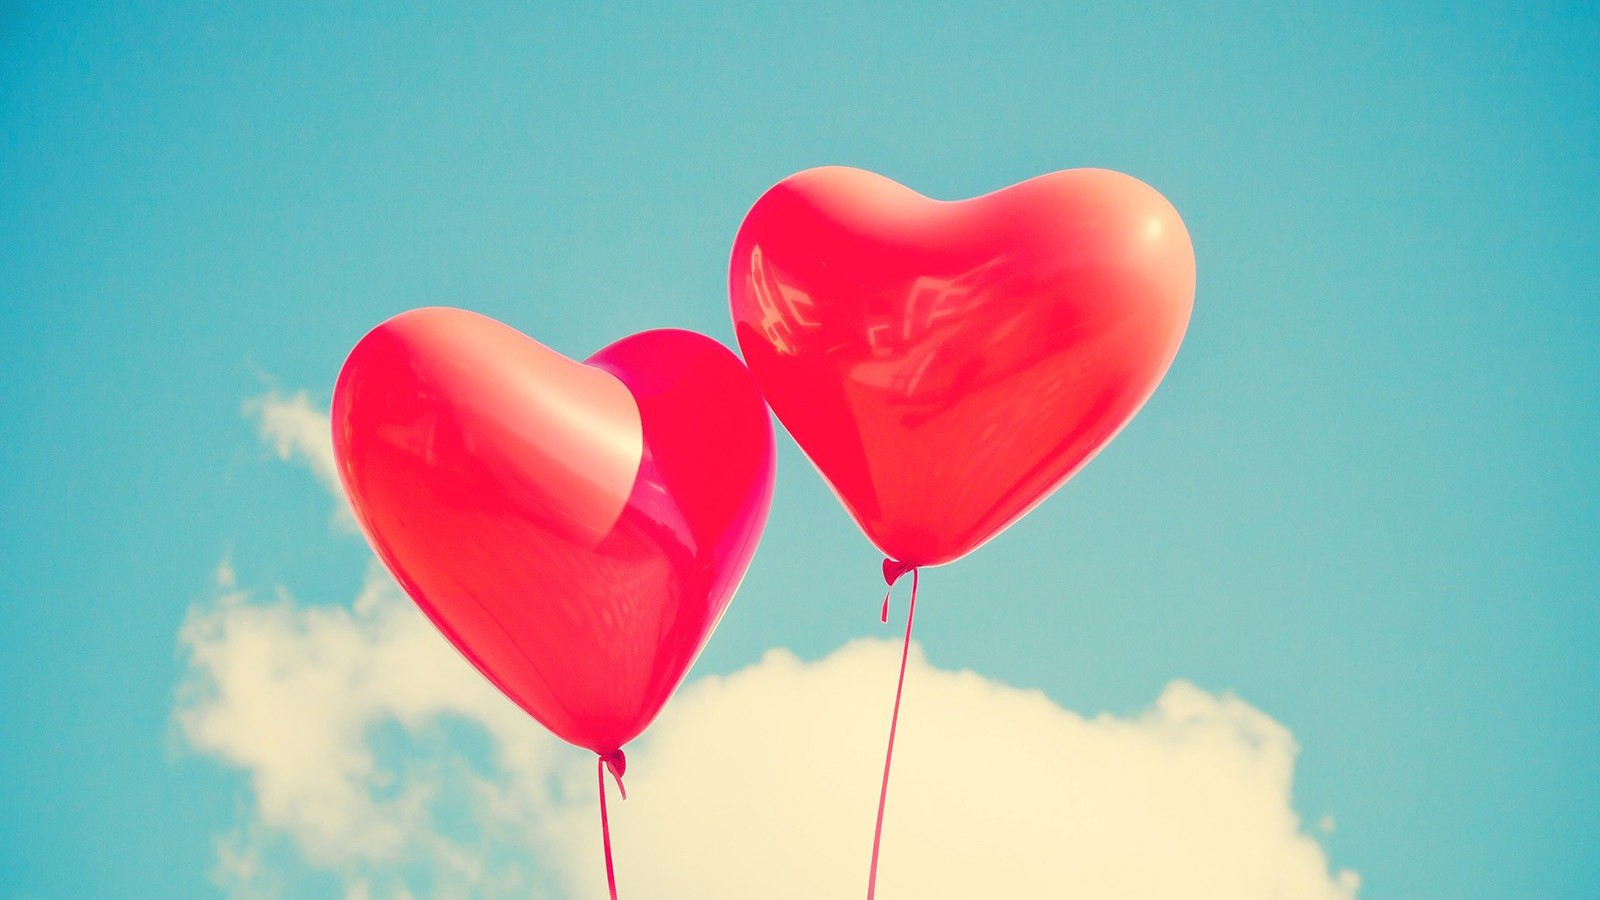 two heart-shaped balloons floating in the air.